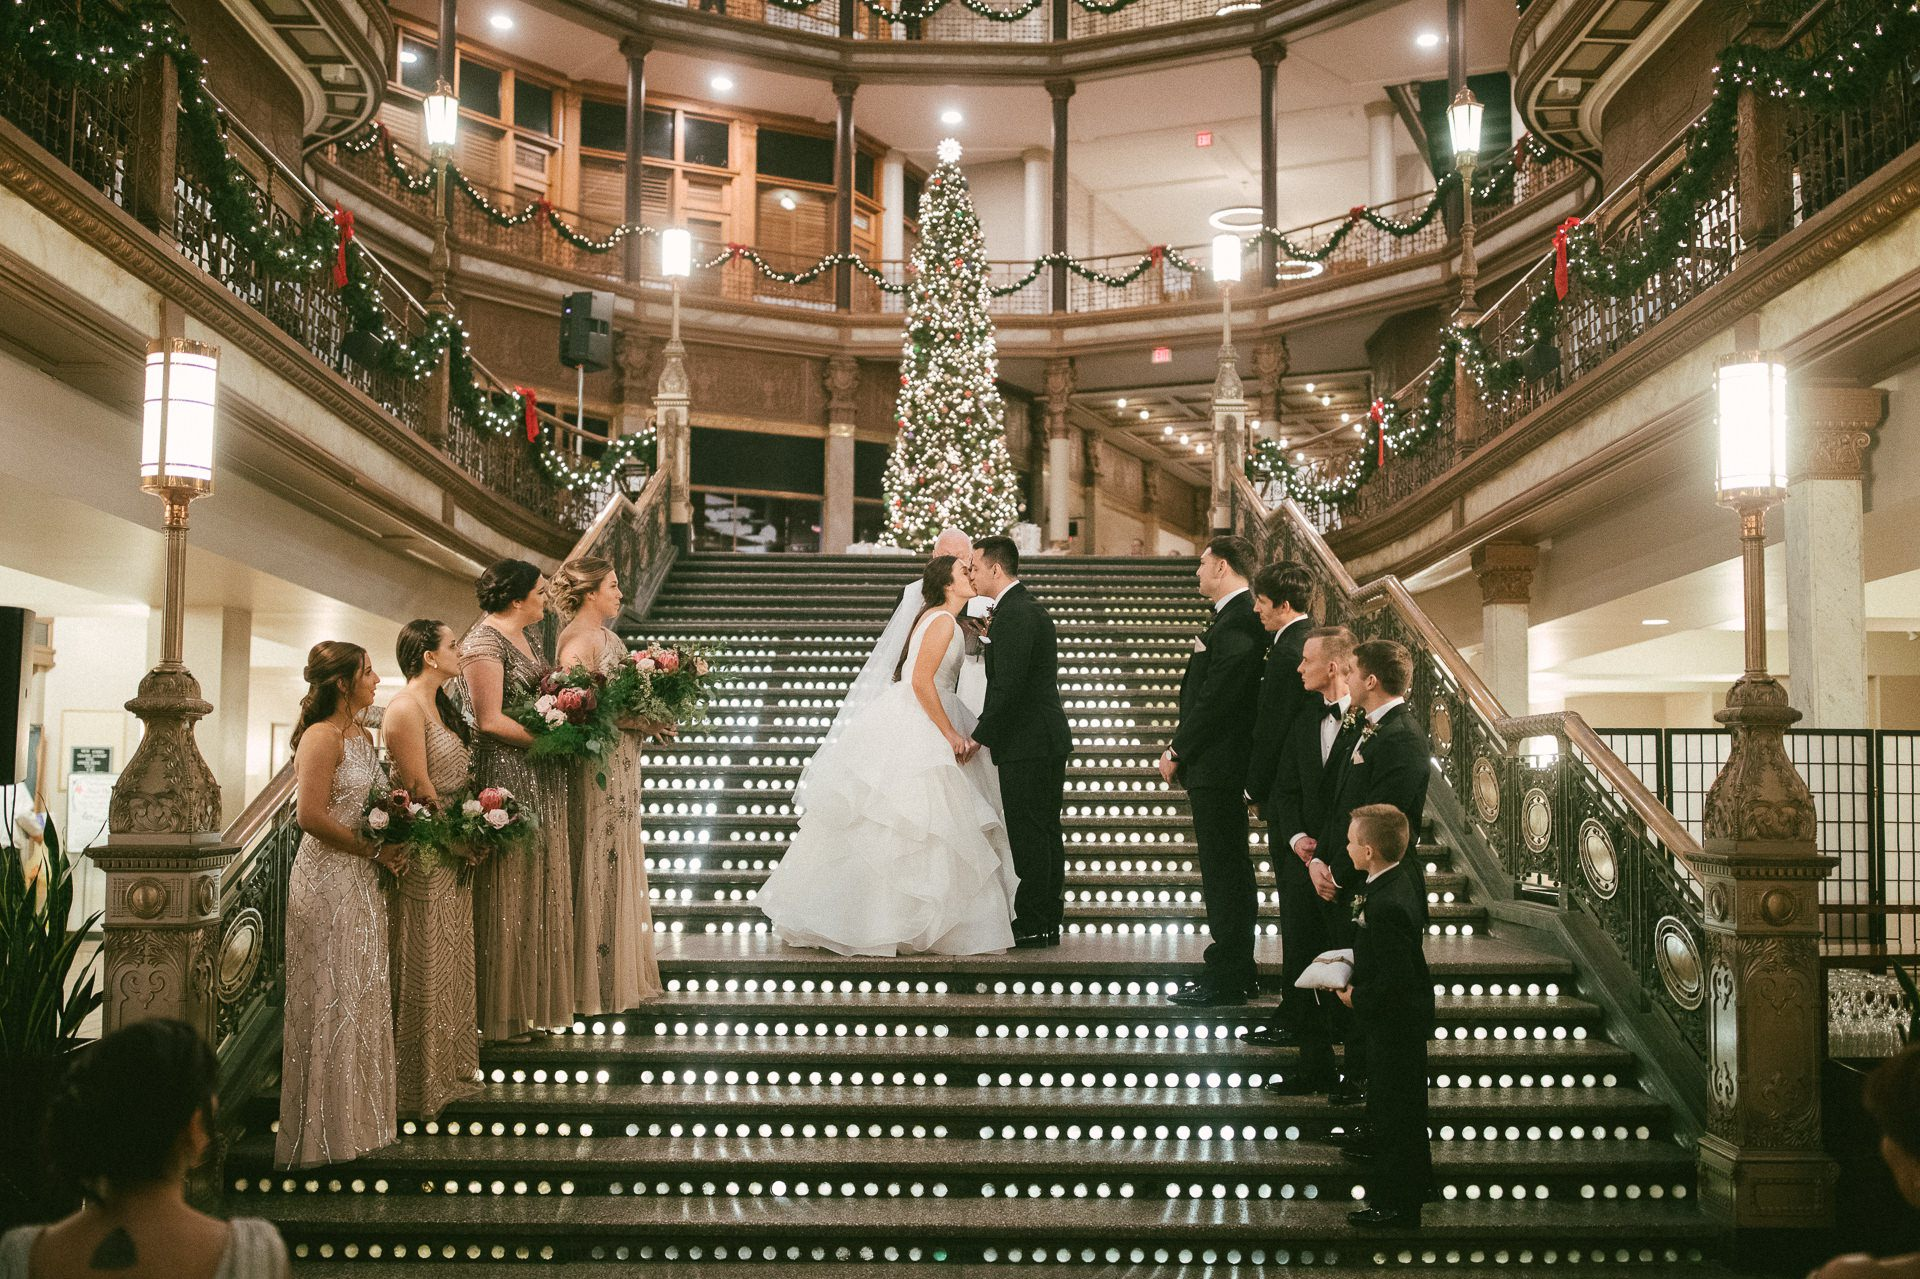 Hyatt Old Arcade Wedding Photographer in Cleveland 2 4.jpg